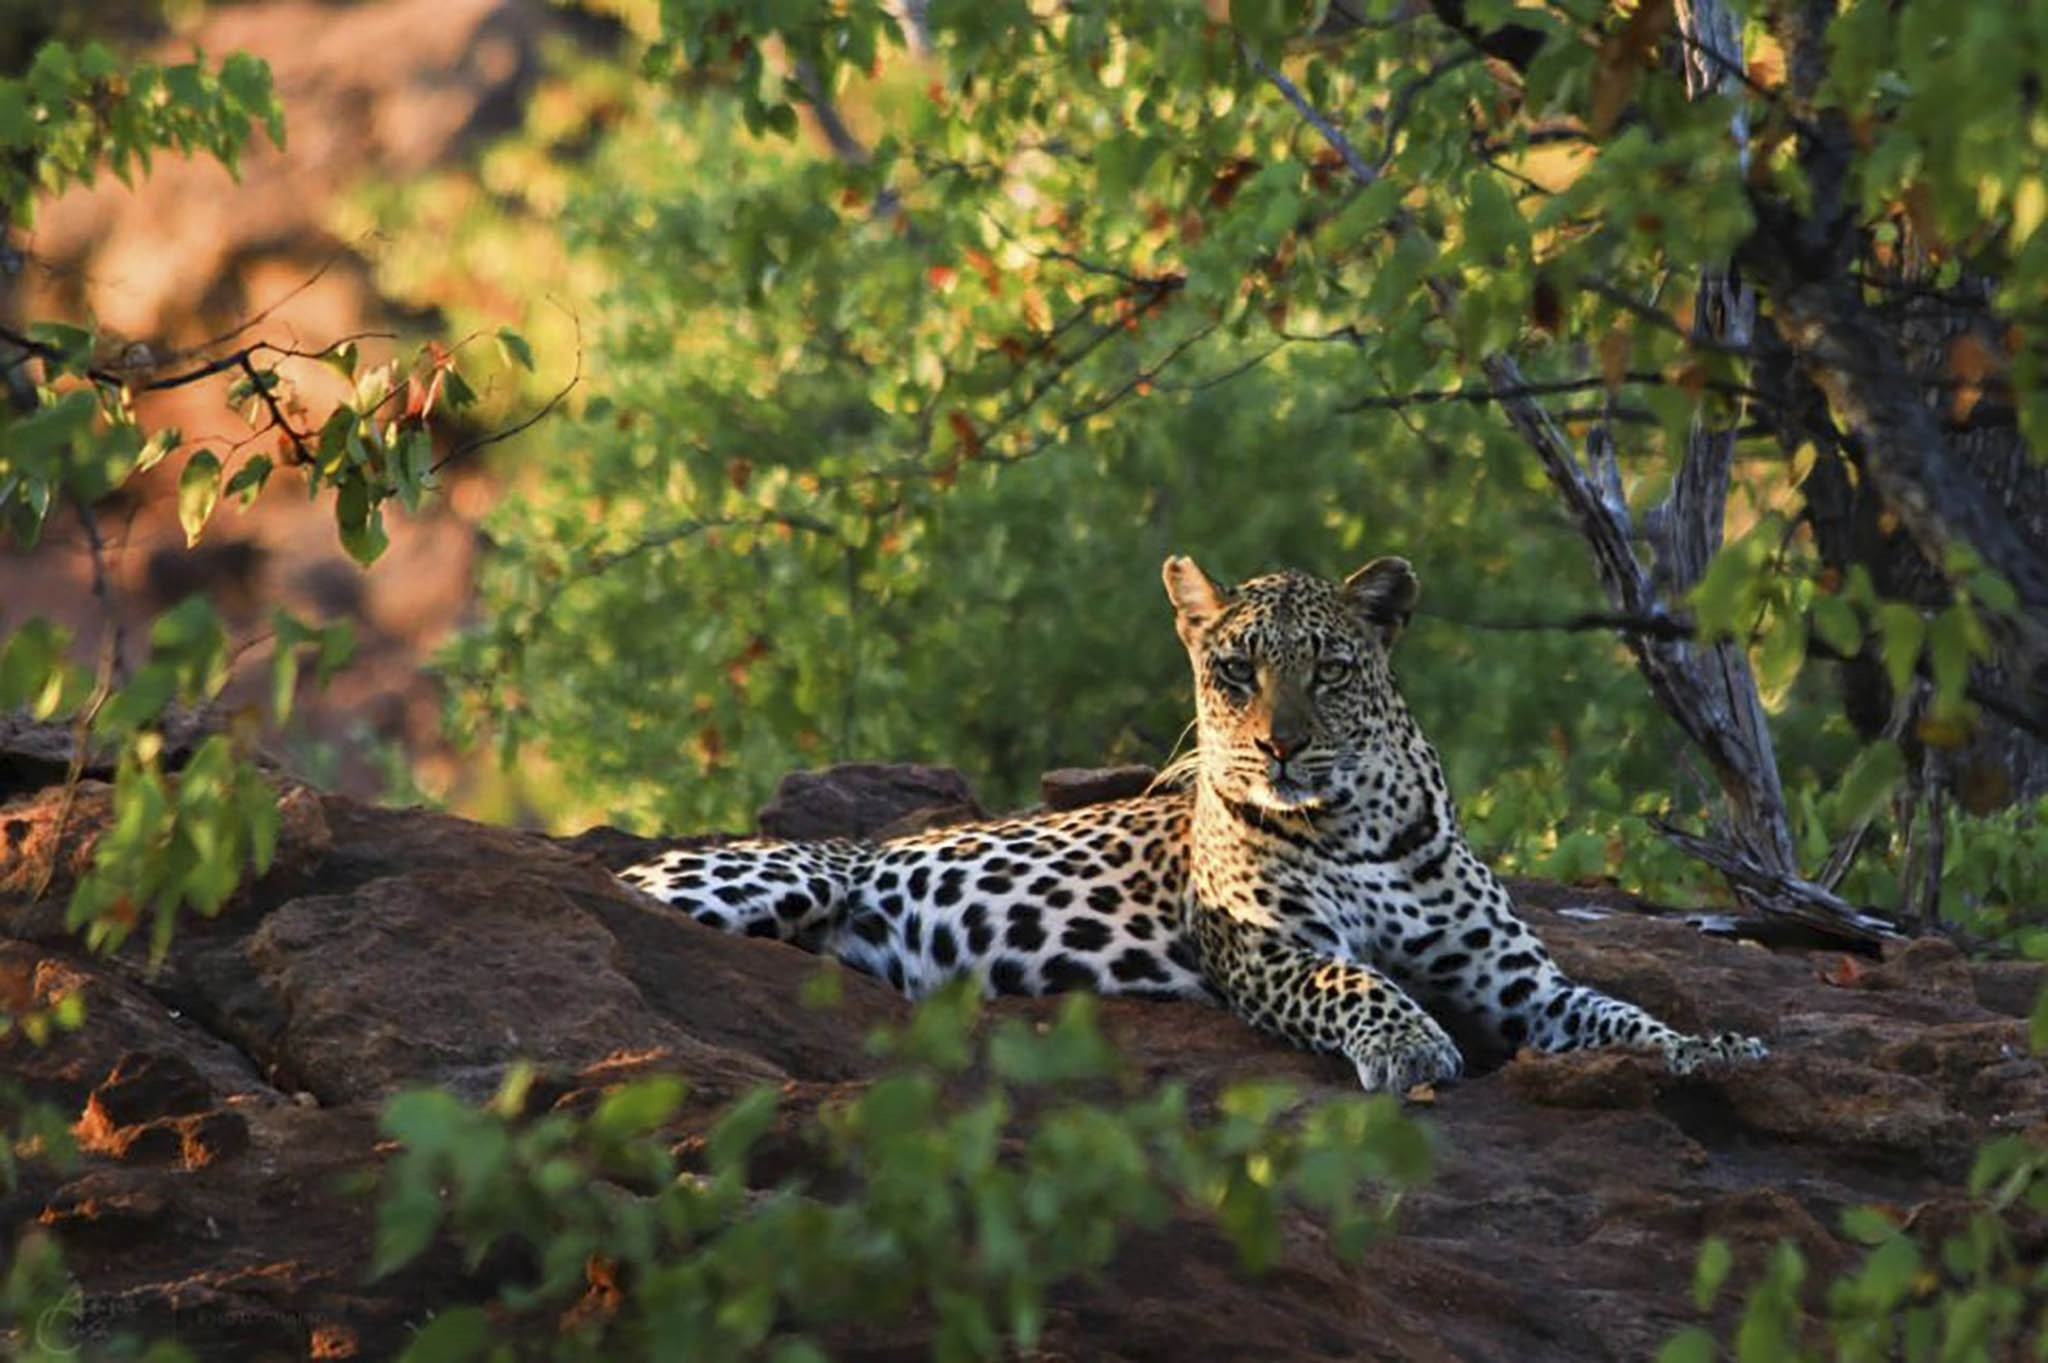 Illegal killing of leopards in the Soutpansberg Mountains has reduced their numbers by two-thirds in the last decade.